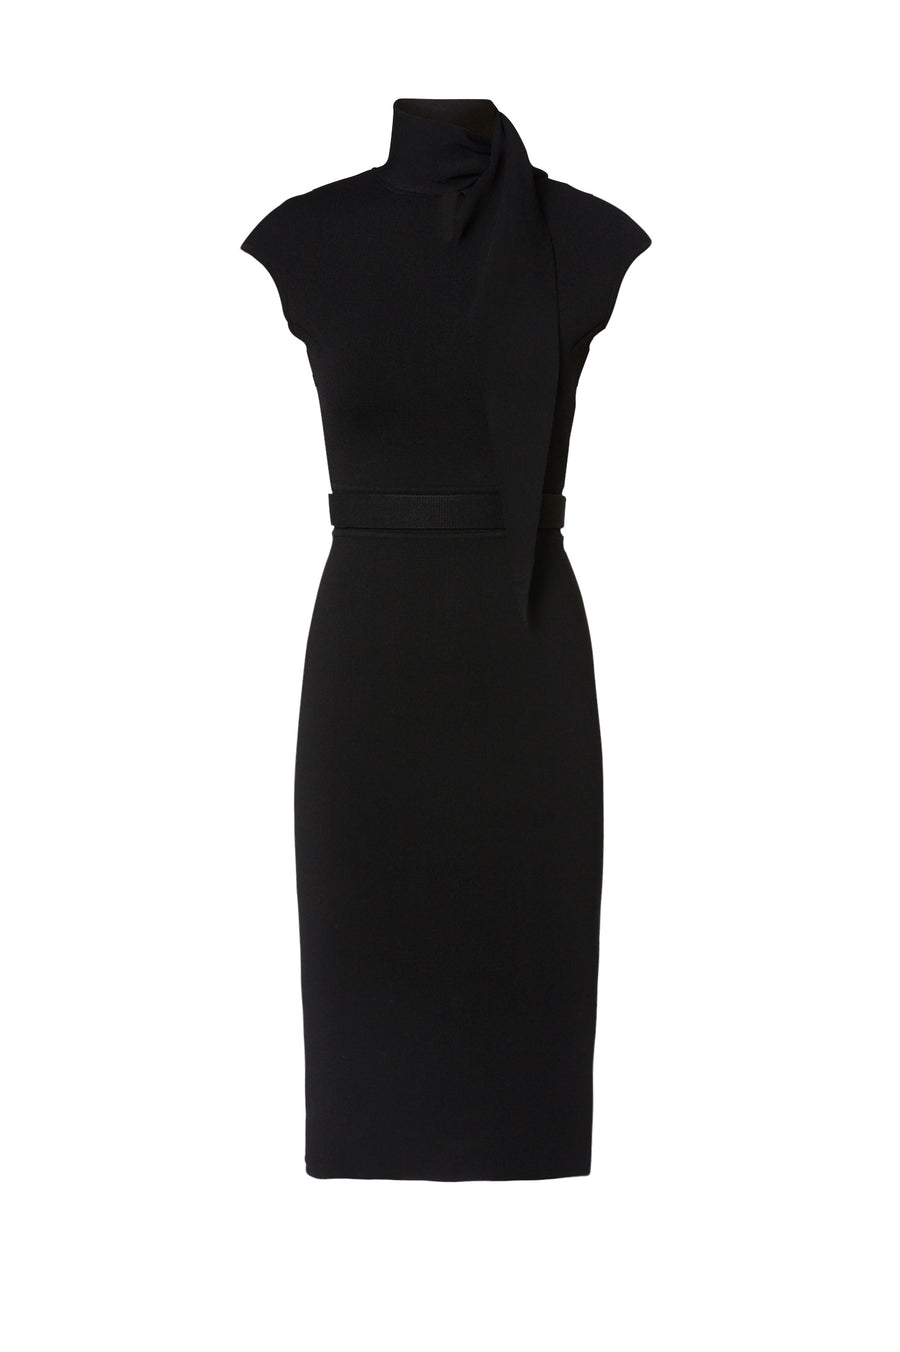 Crepe Knit Cravat Dress, tailored dress, cap sleeves, cravat style neckline, Color Black